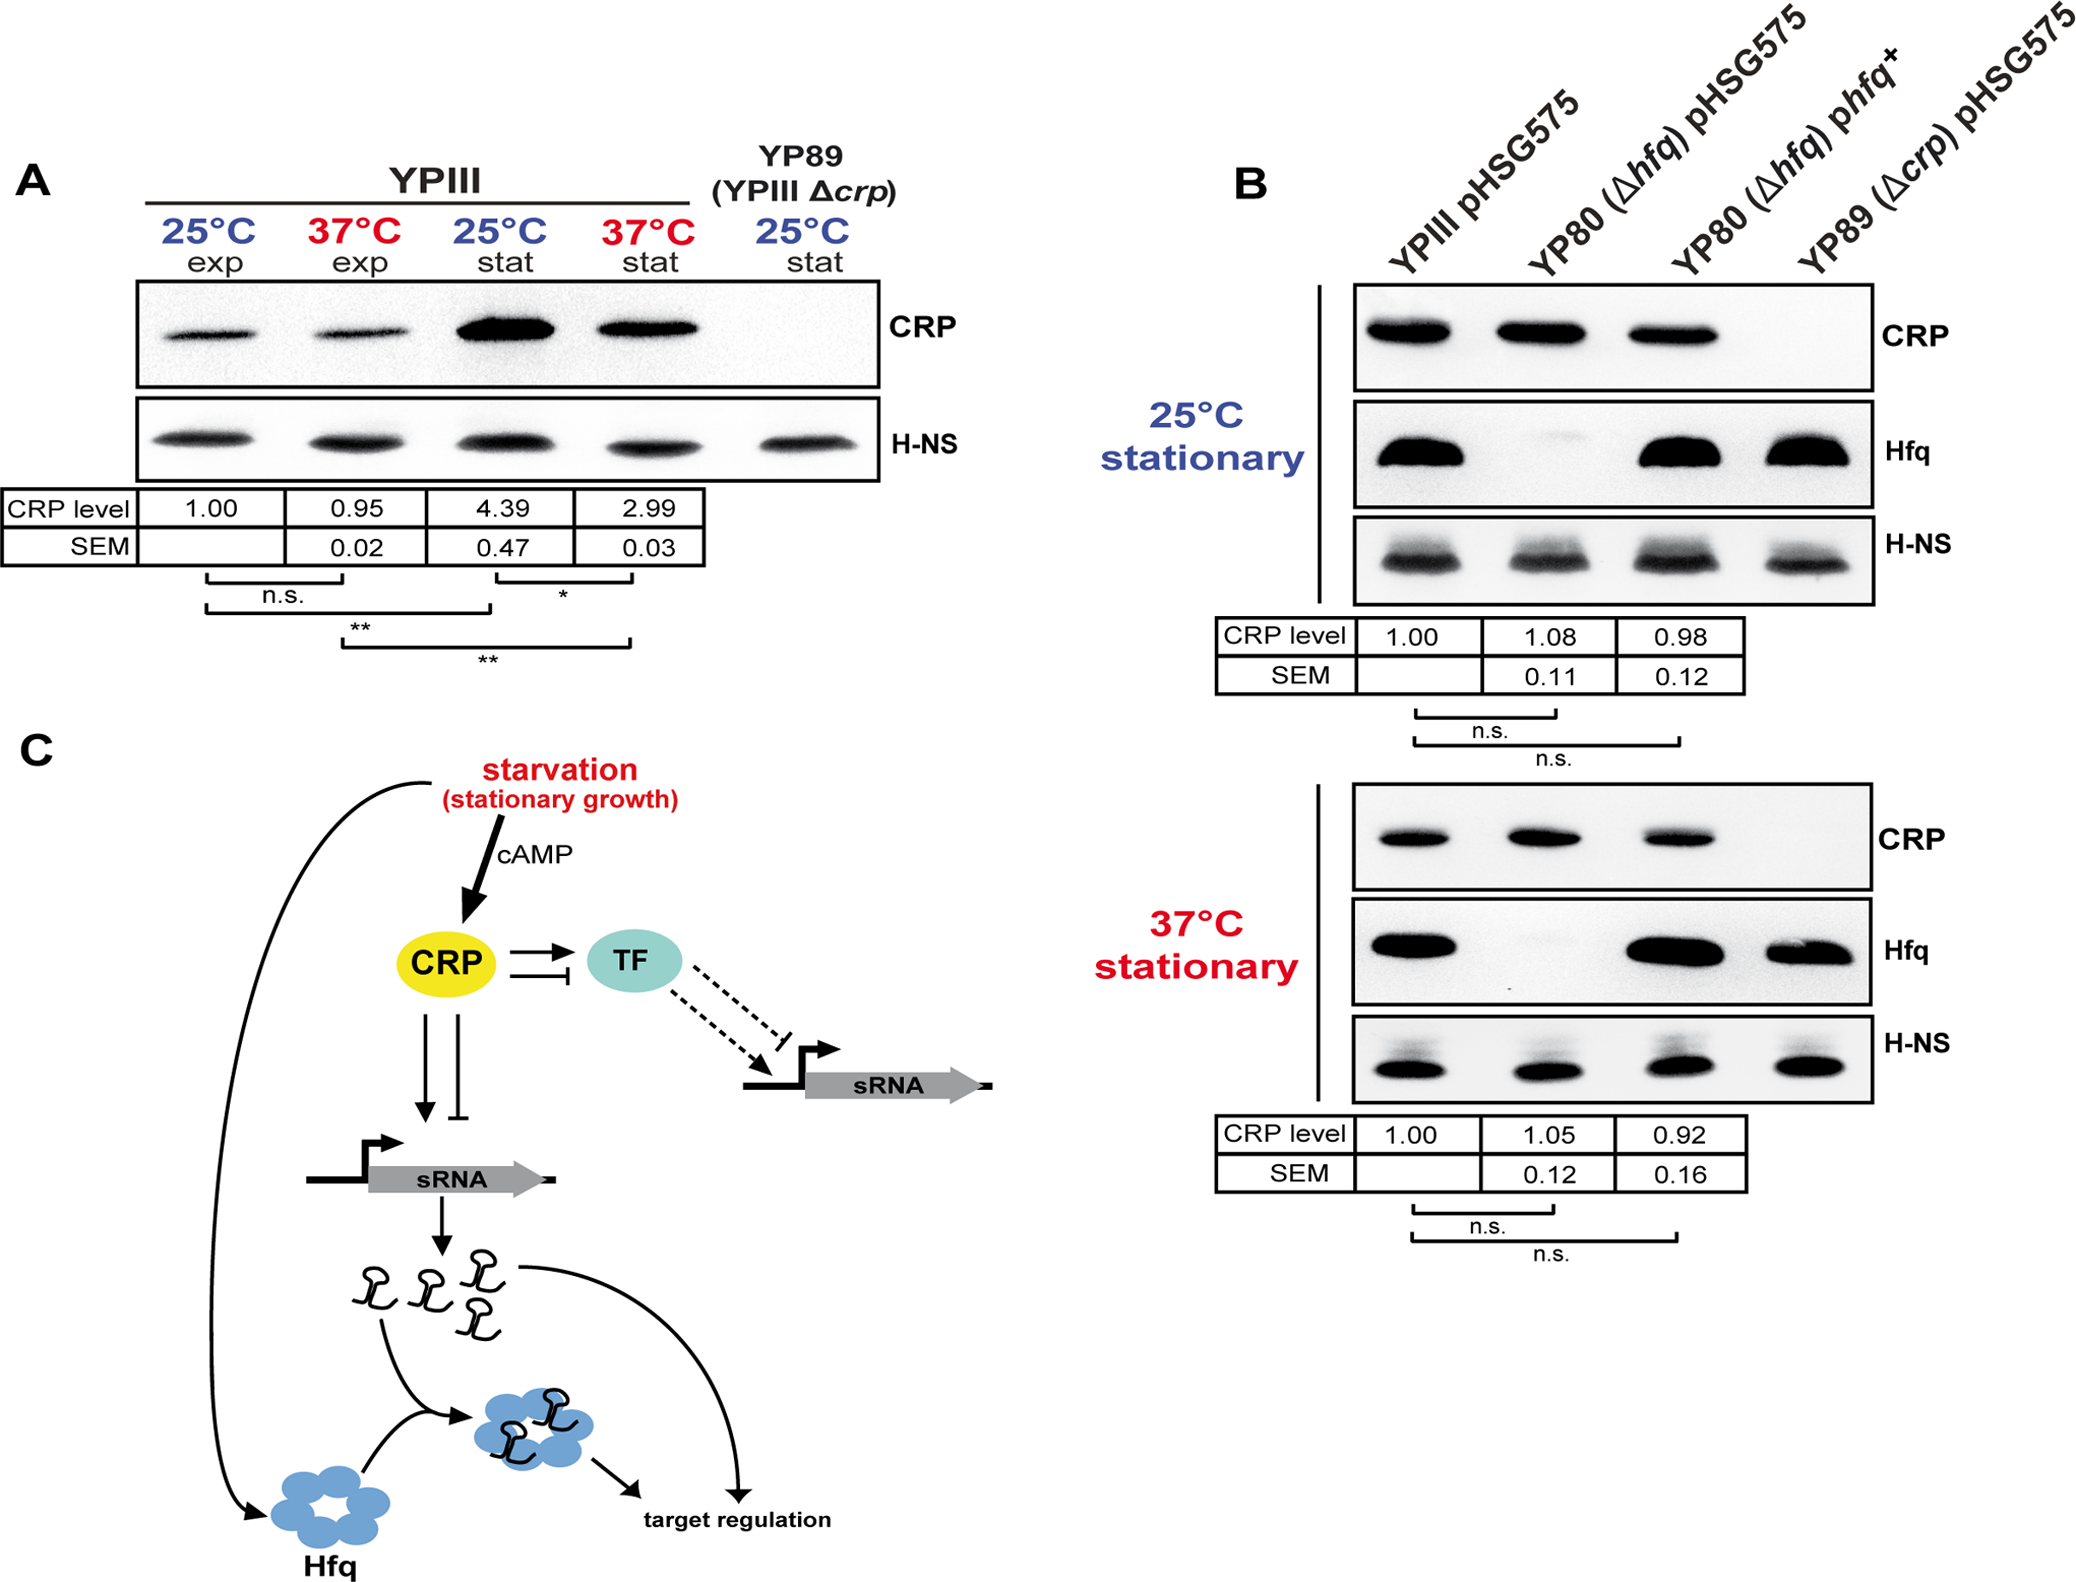 CRP, a growth phase and temperature-responsive master regulator in <i>Y. pseudotuberculosis</i>.